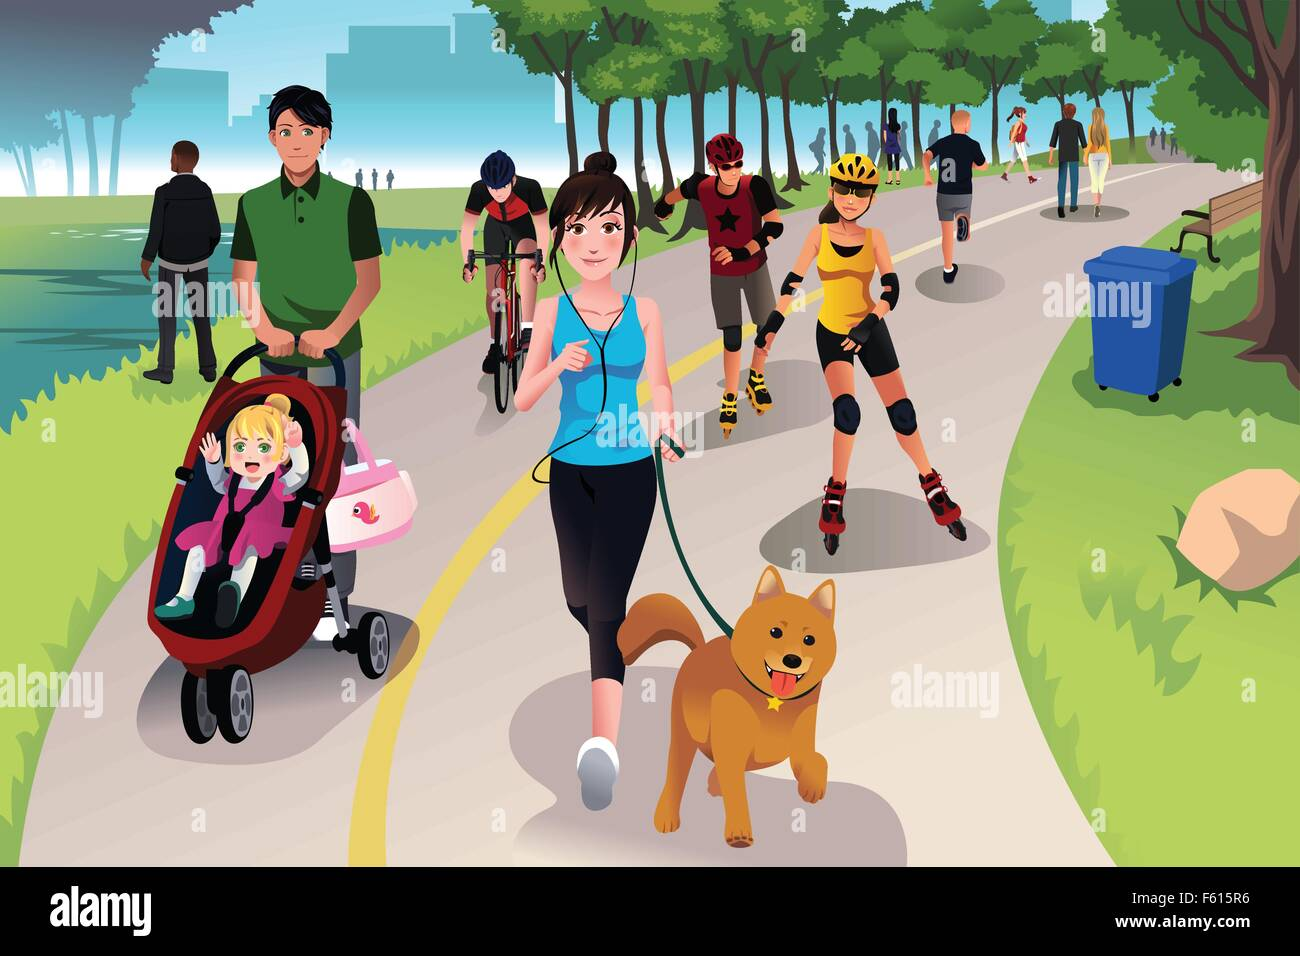 a vector illustration of people in a park doing activities winding road clip art transparent background winding road clipart png